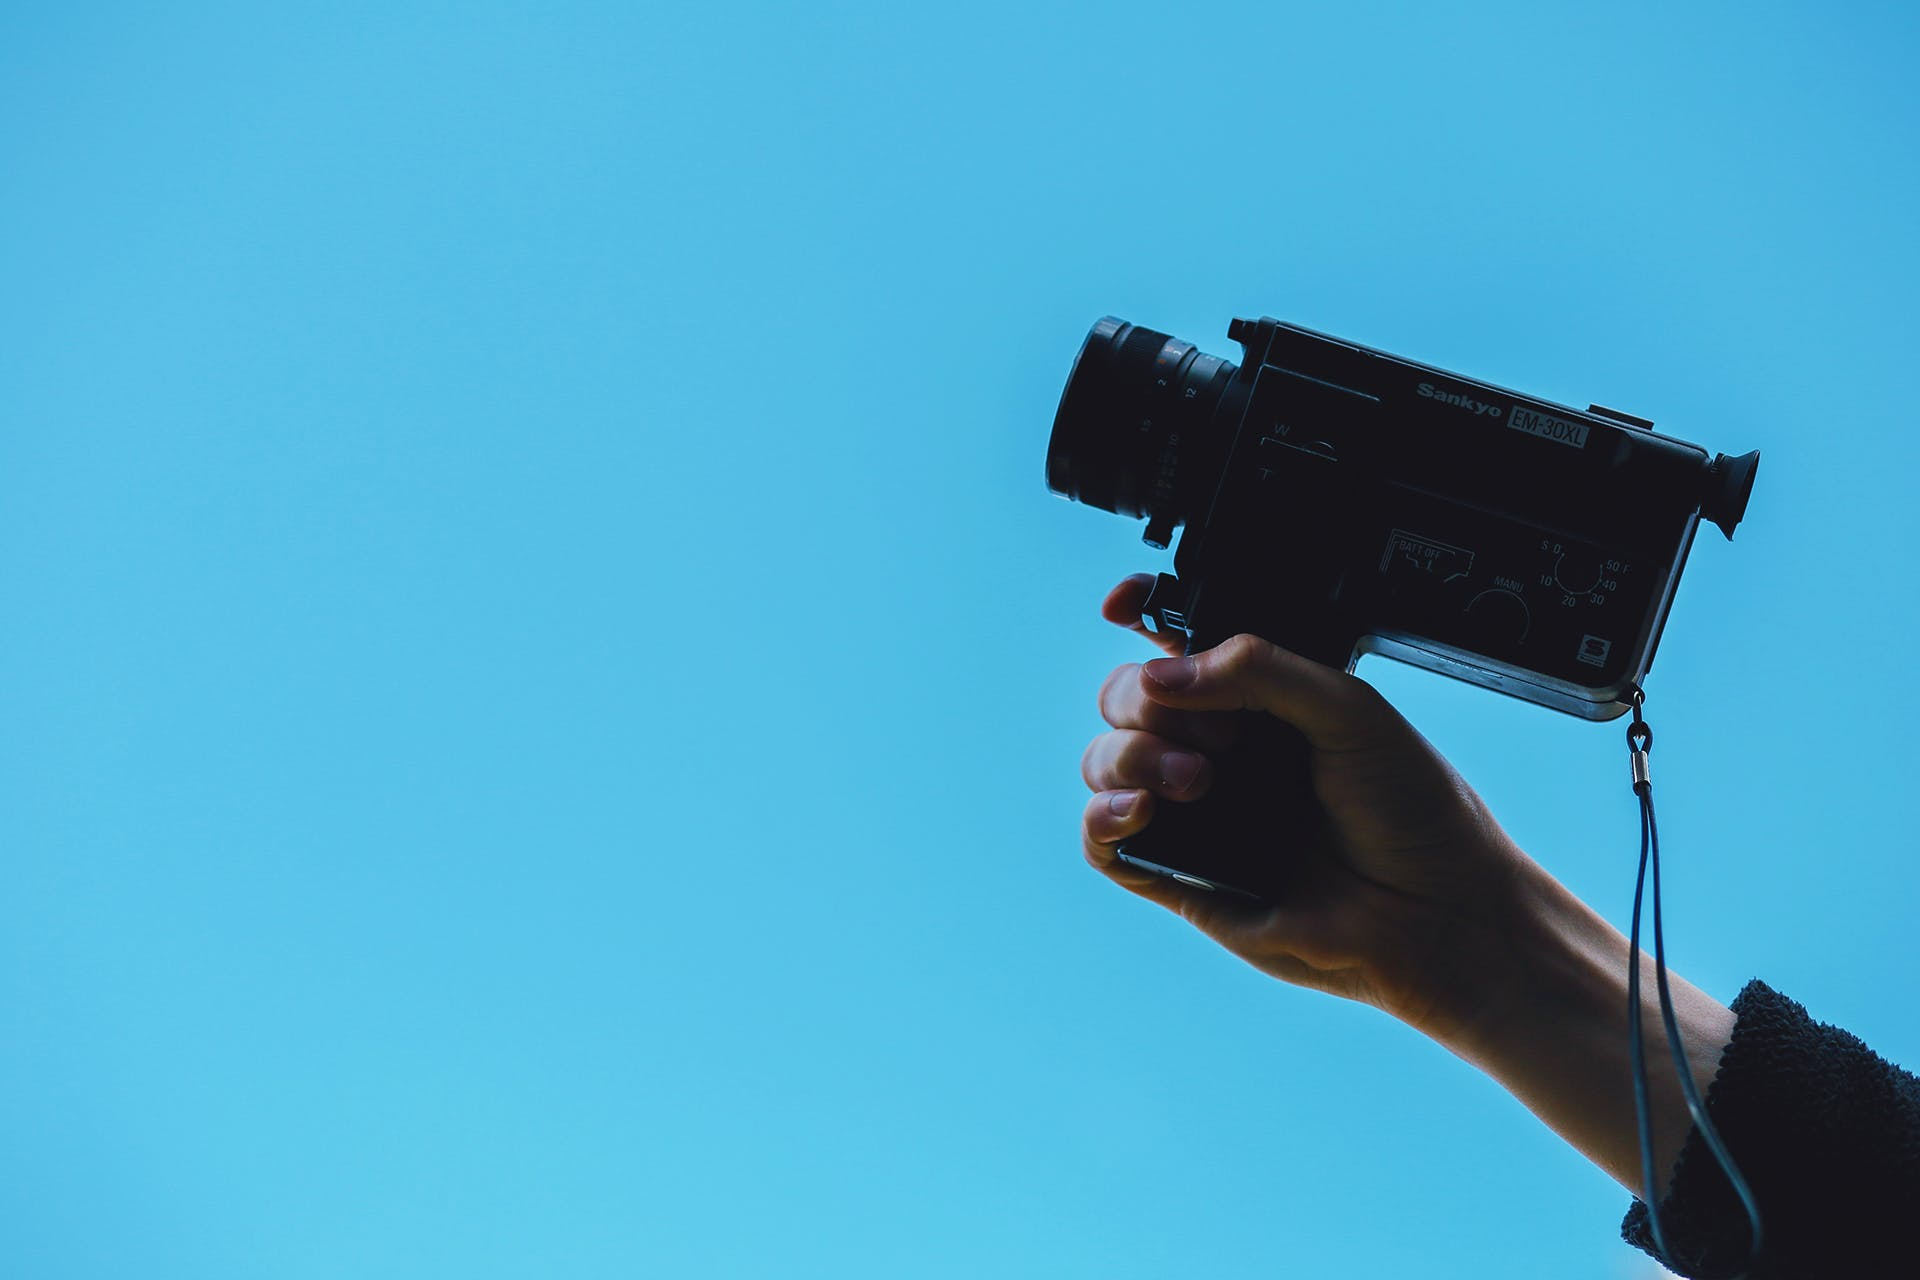 Woman's hand holding a camera like a gun over a blue background.